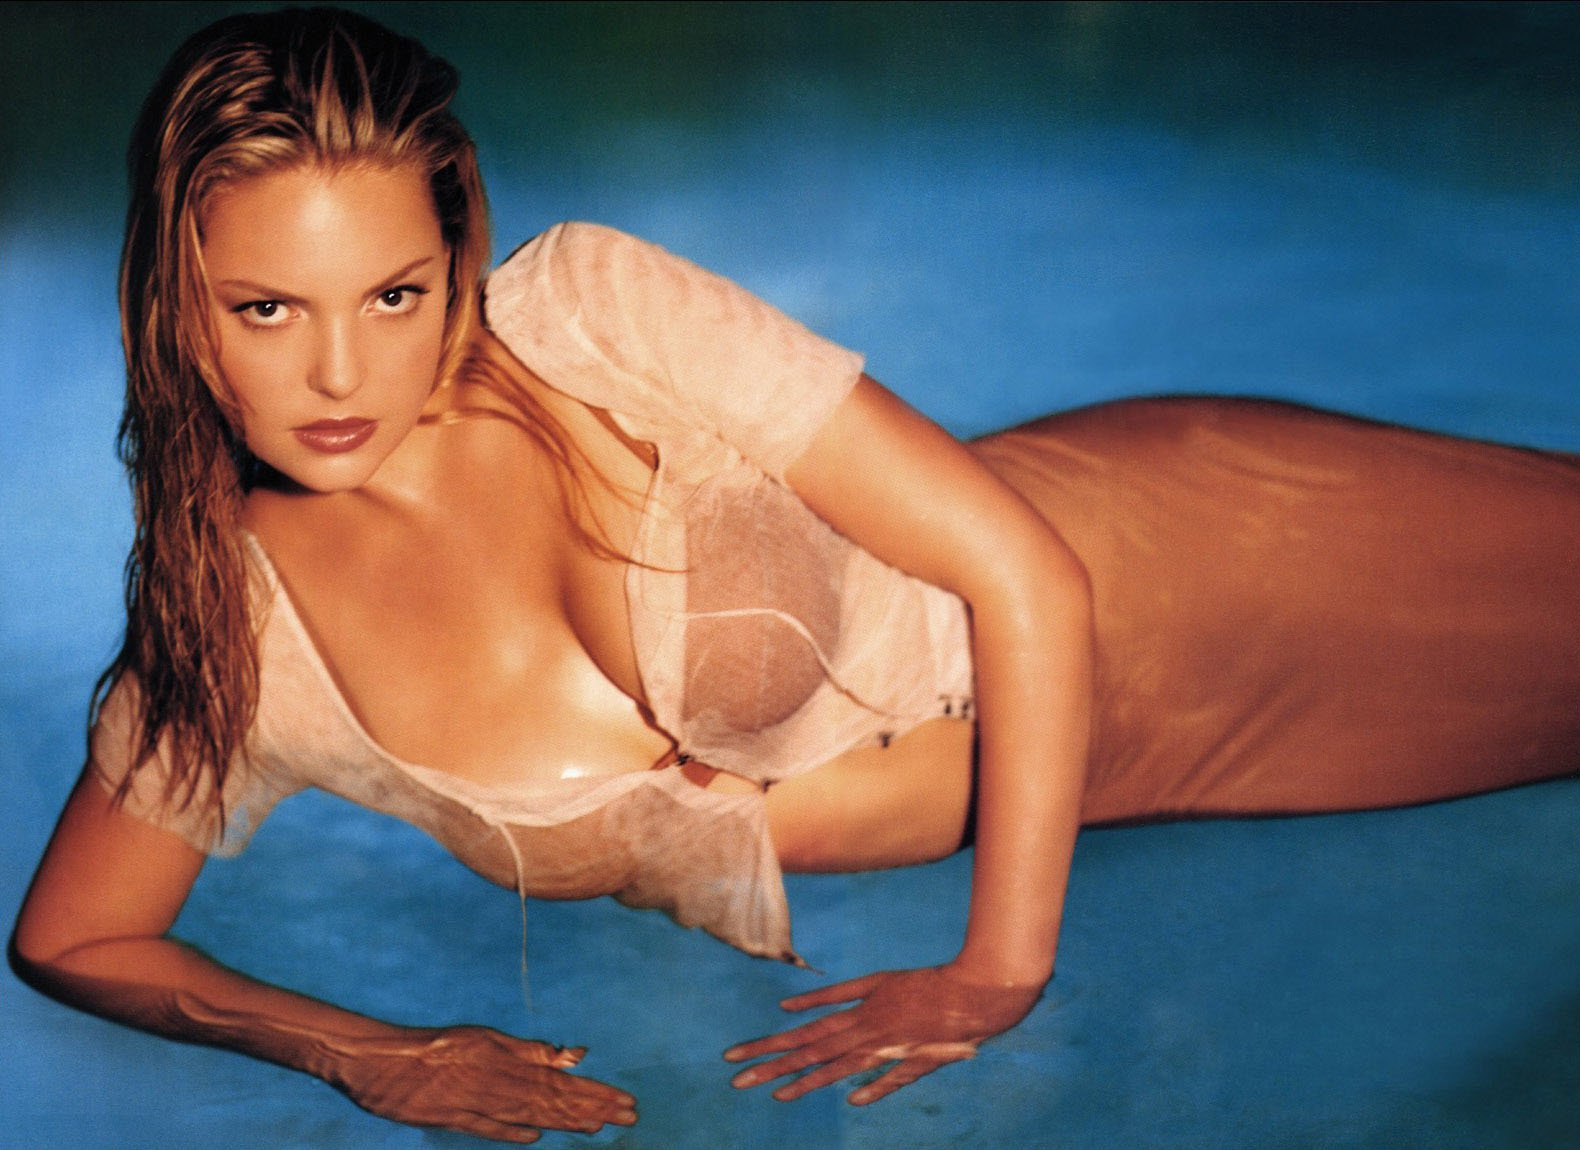 Nude photos of katherine heigl